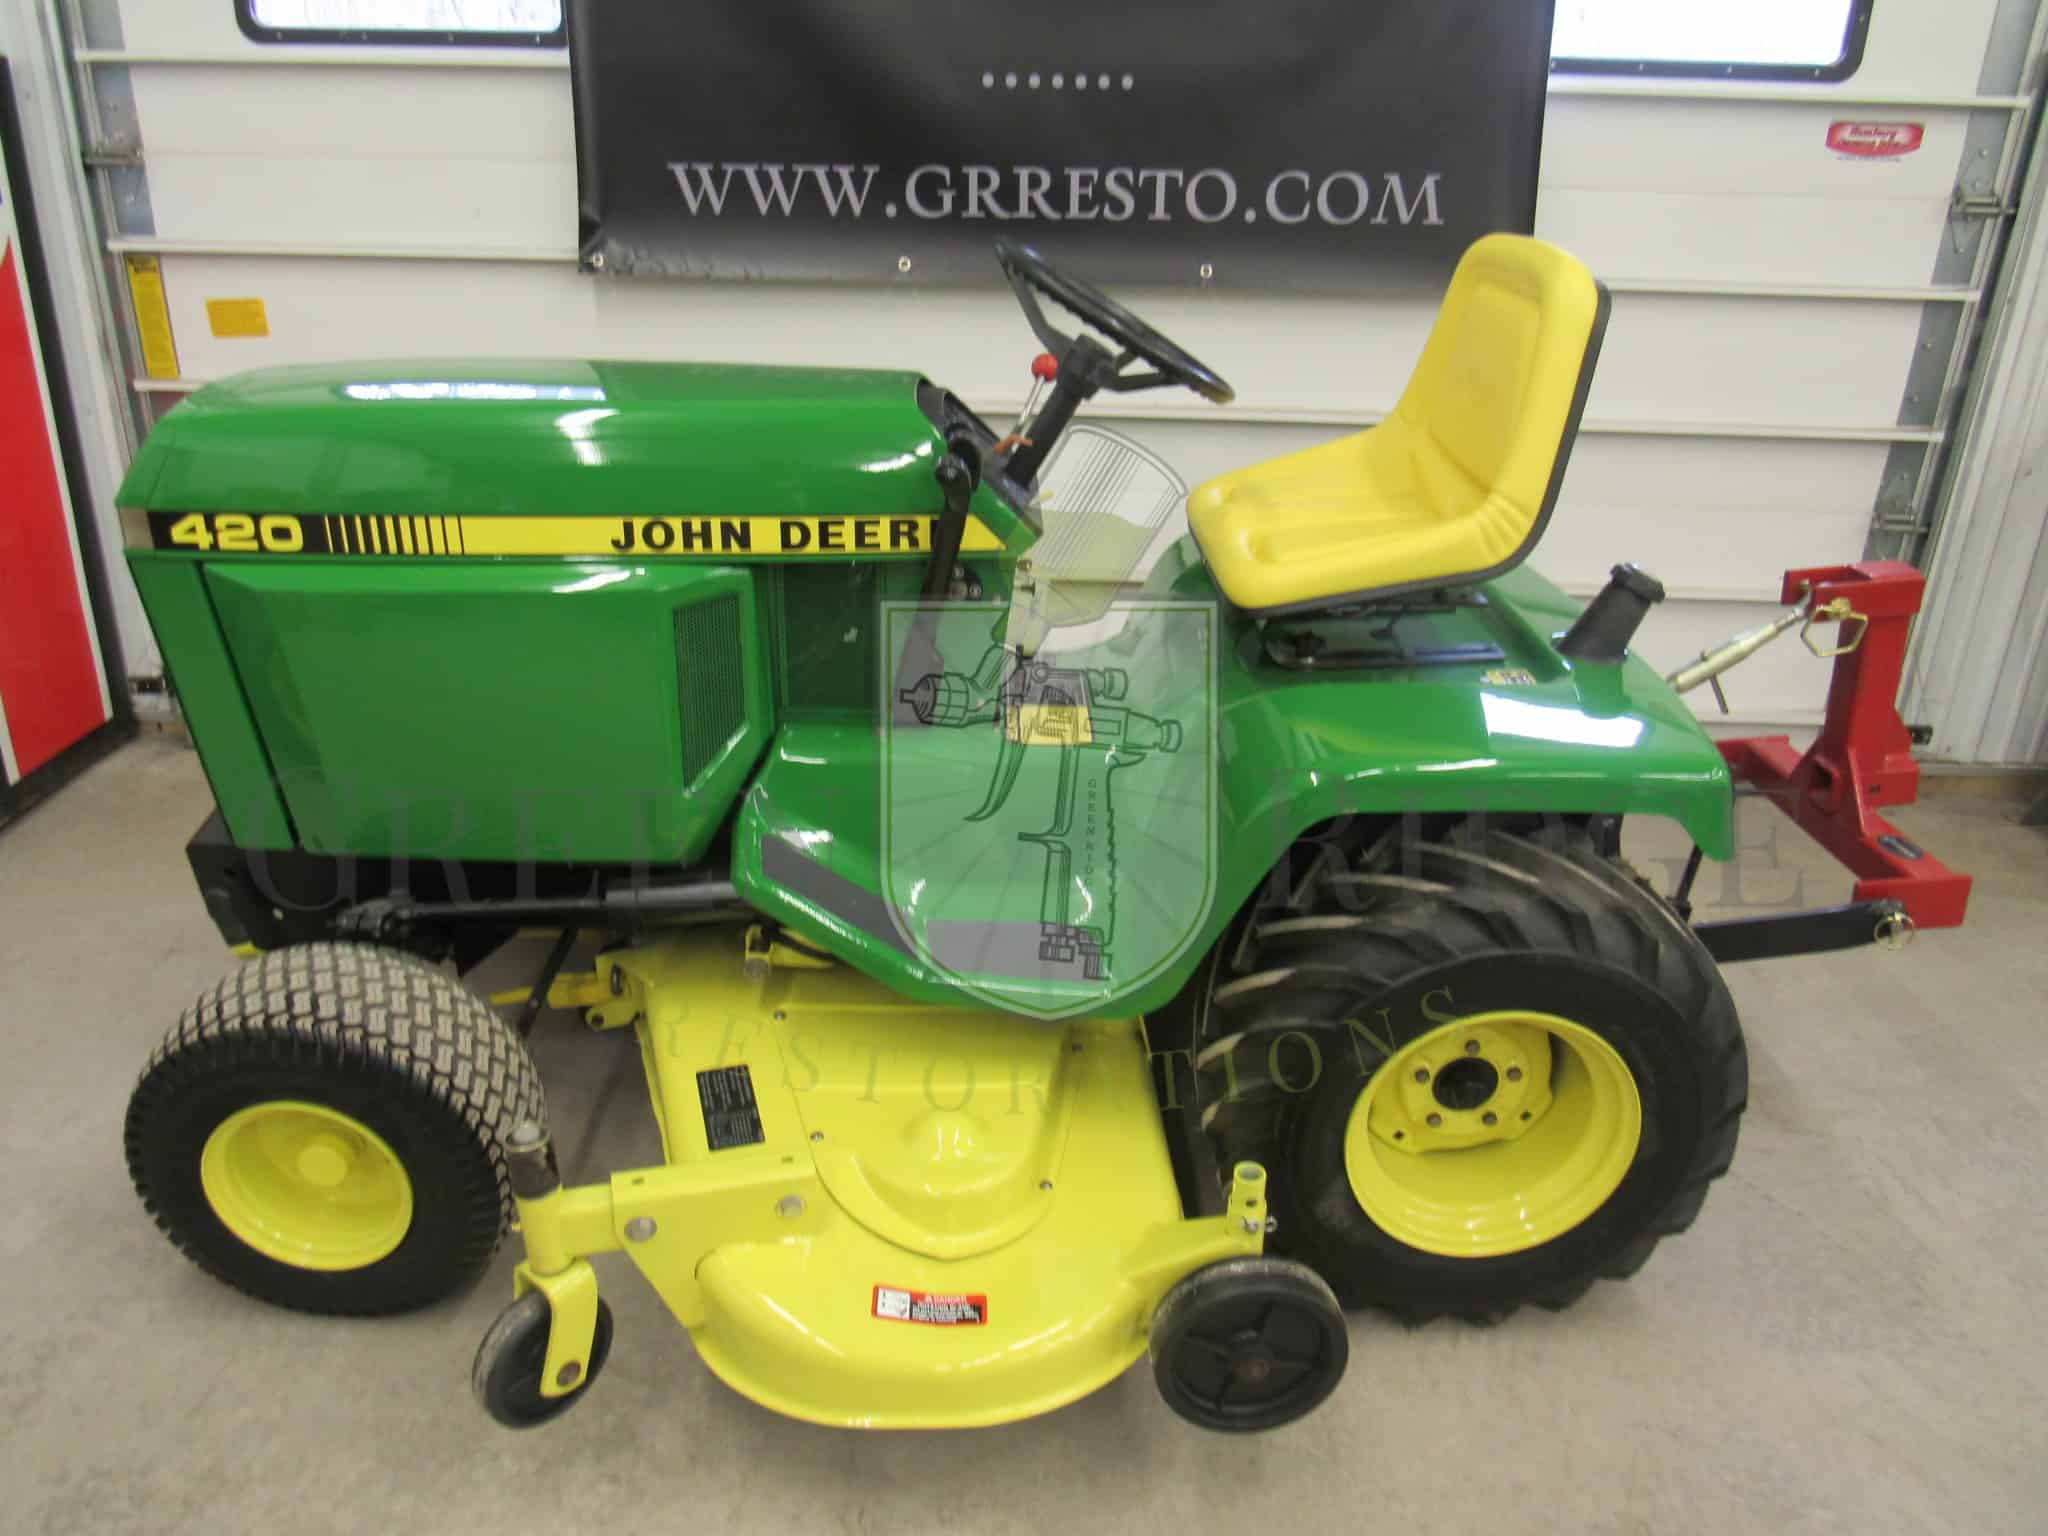 All the Details on The Elusive Diesel John Deere 330 Lawn Tractor